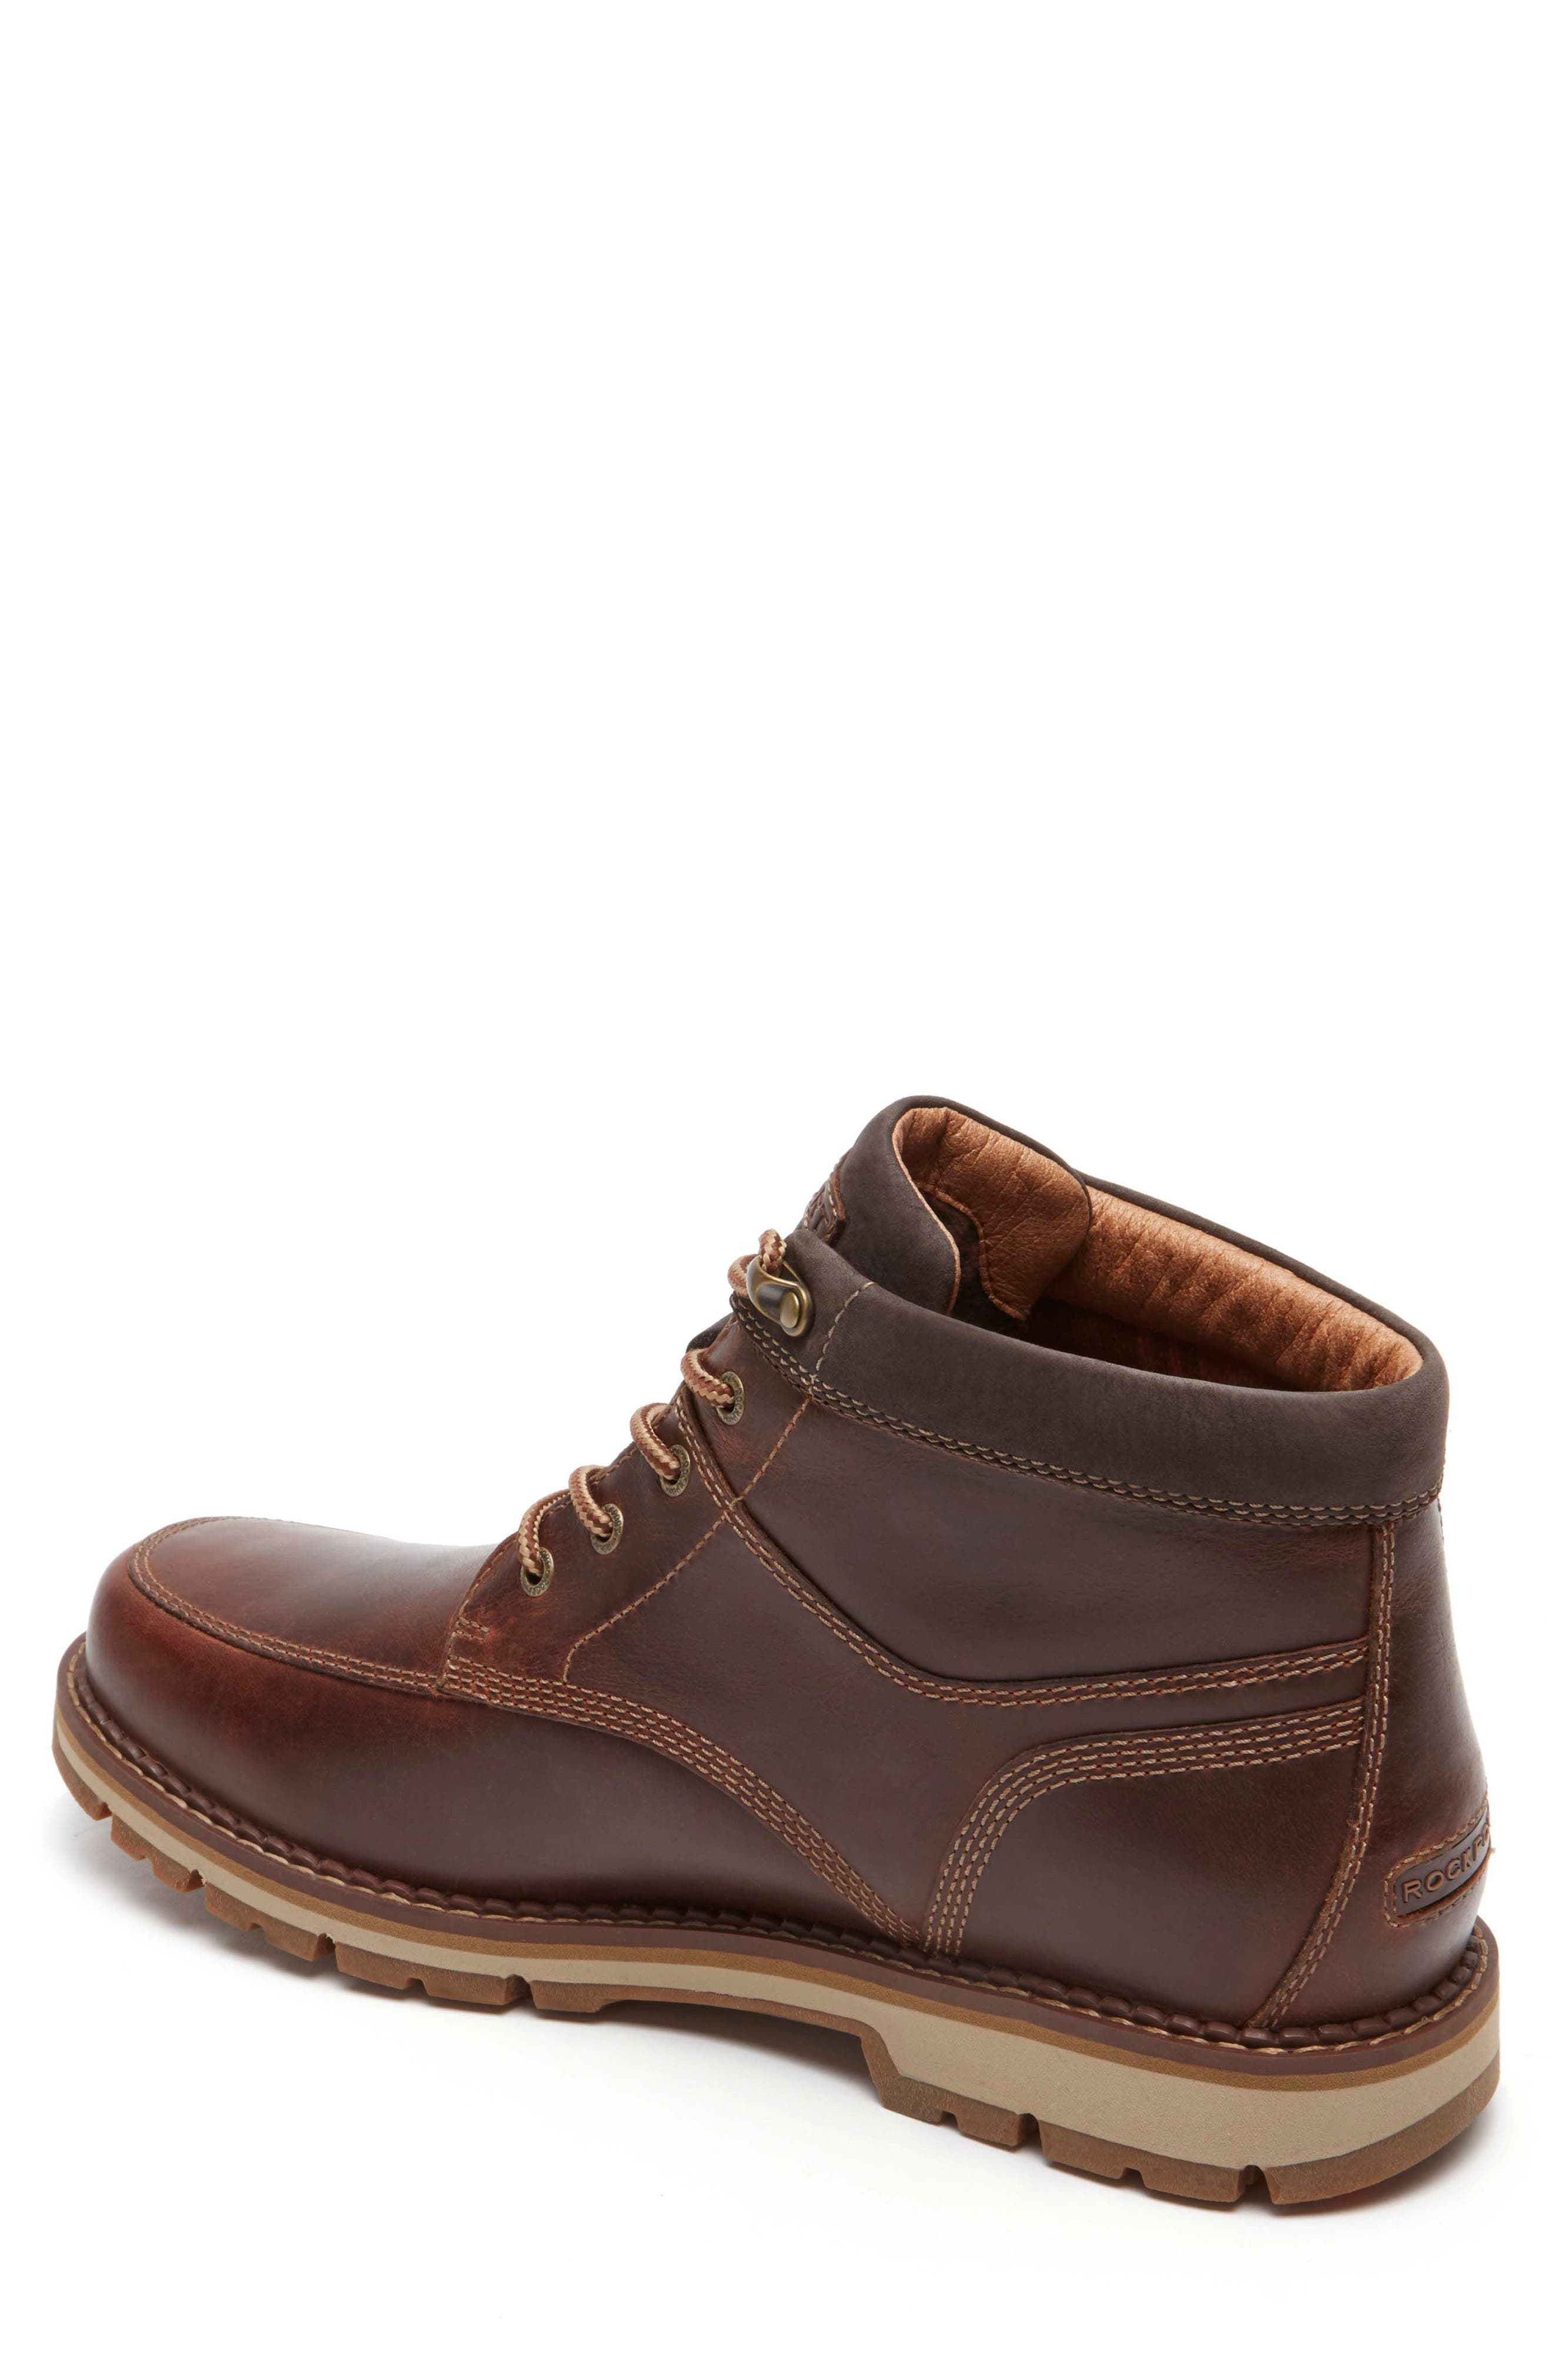 Centry Moc Toe Boot,                             Alternate thumbnail 2, color,                             Brown Leather